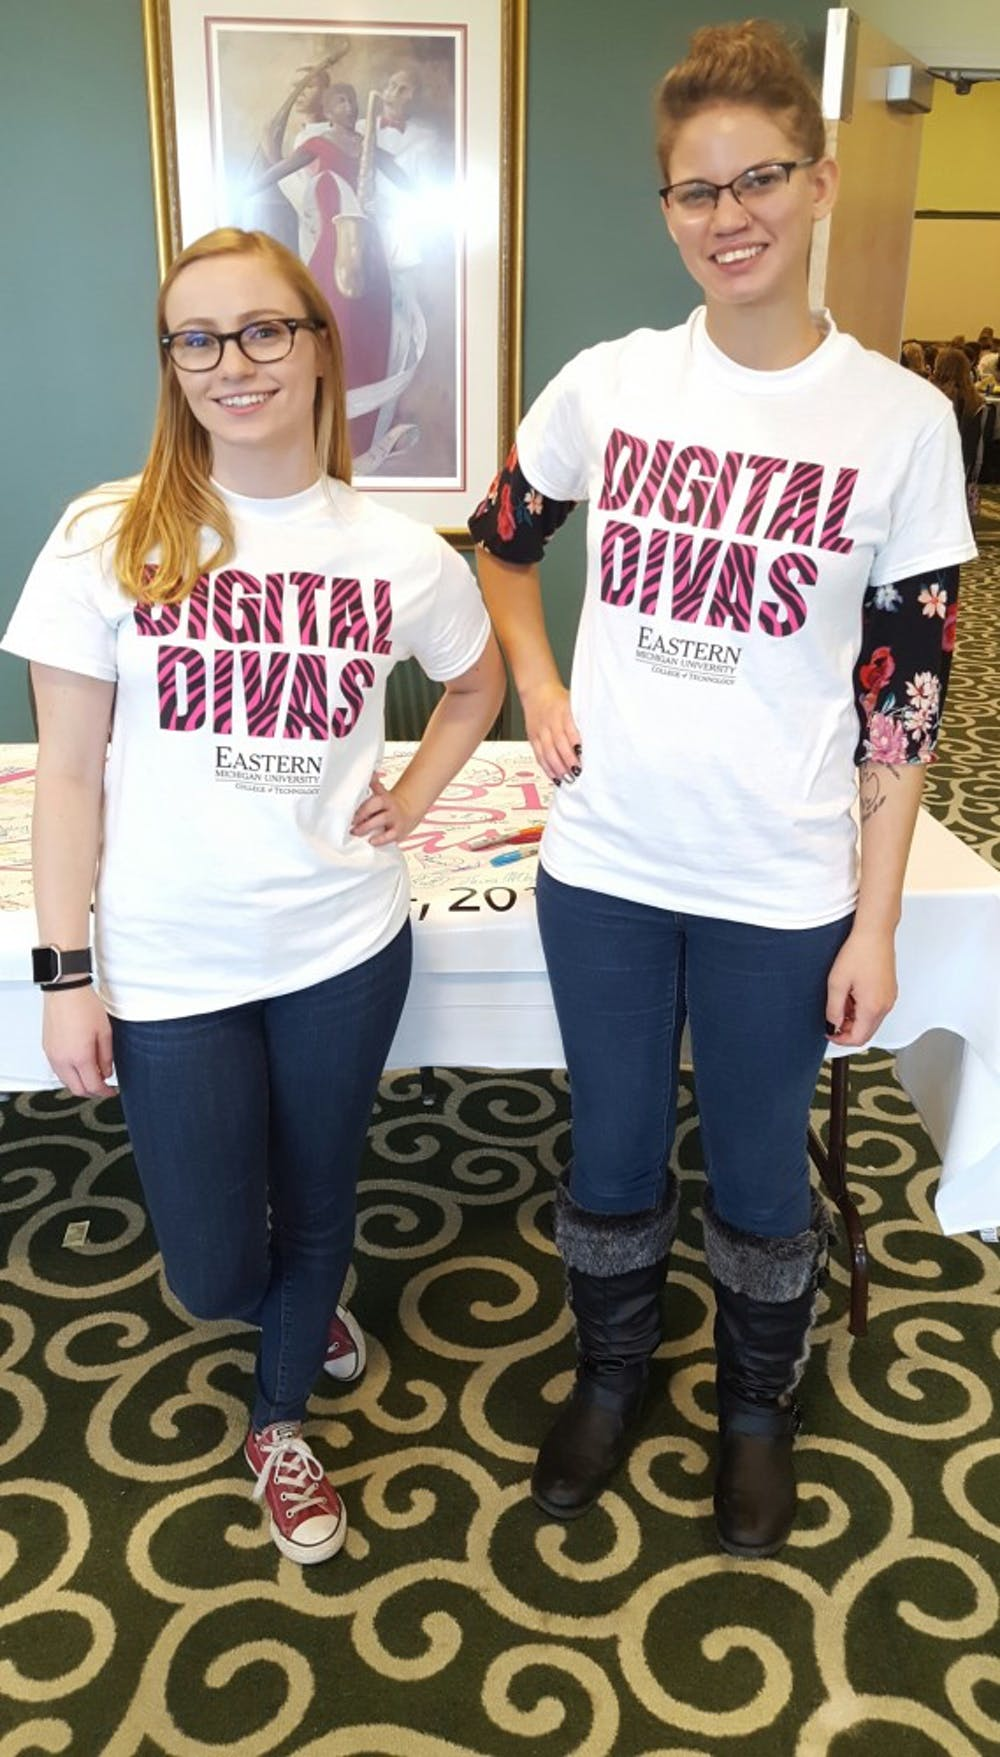 Digital Divas at EMU